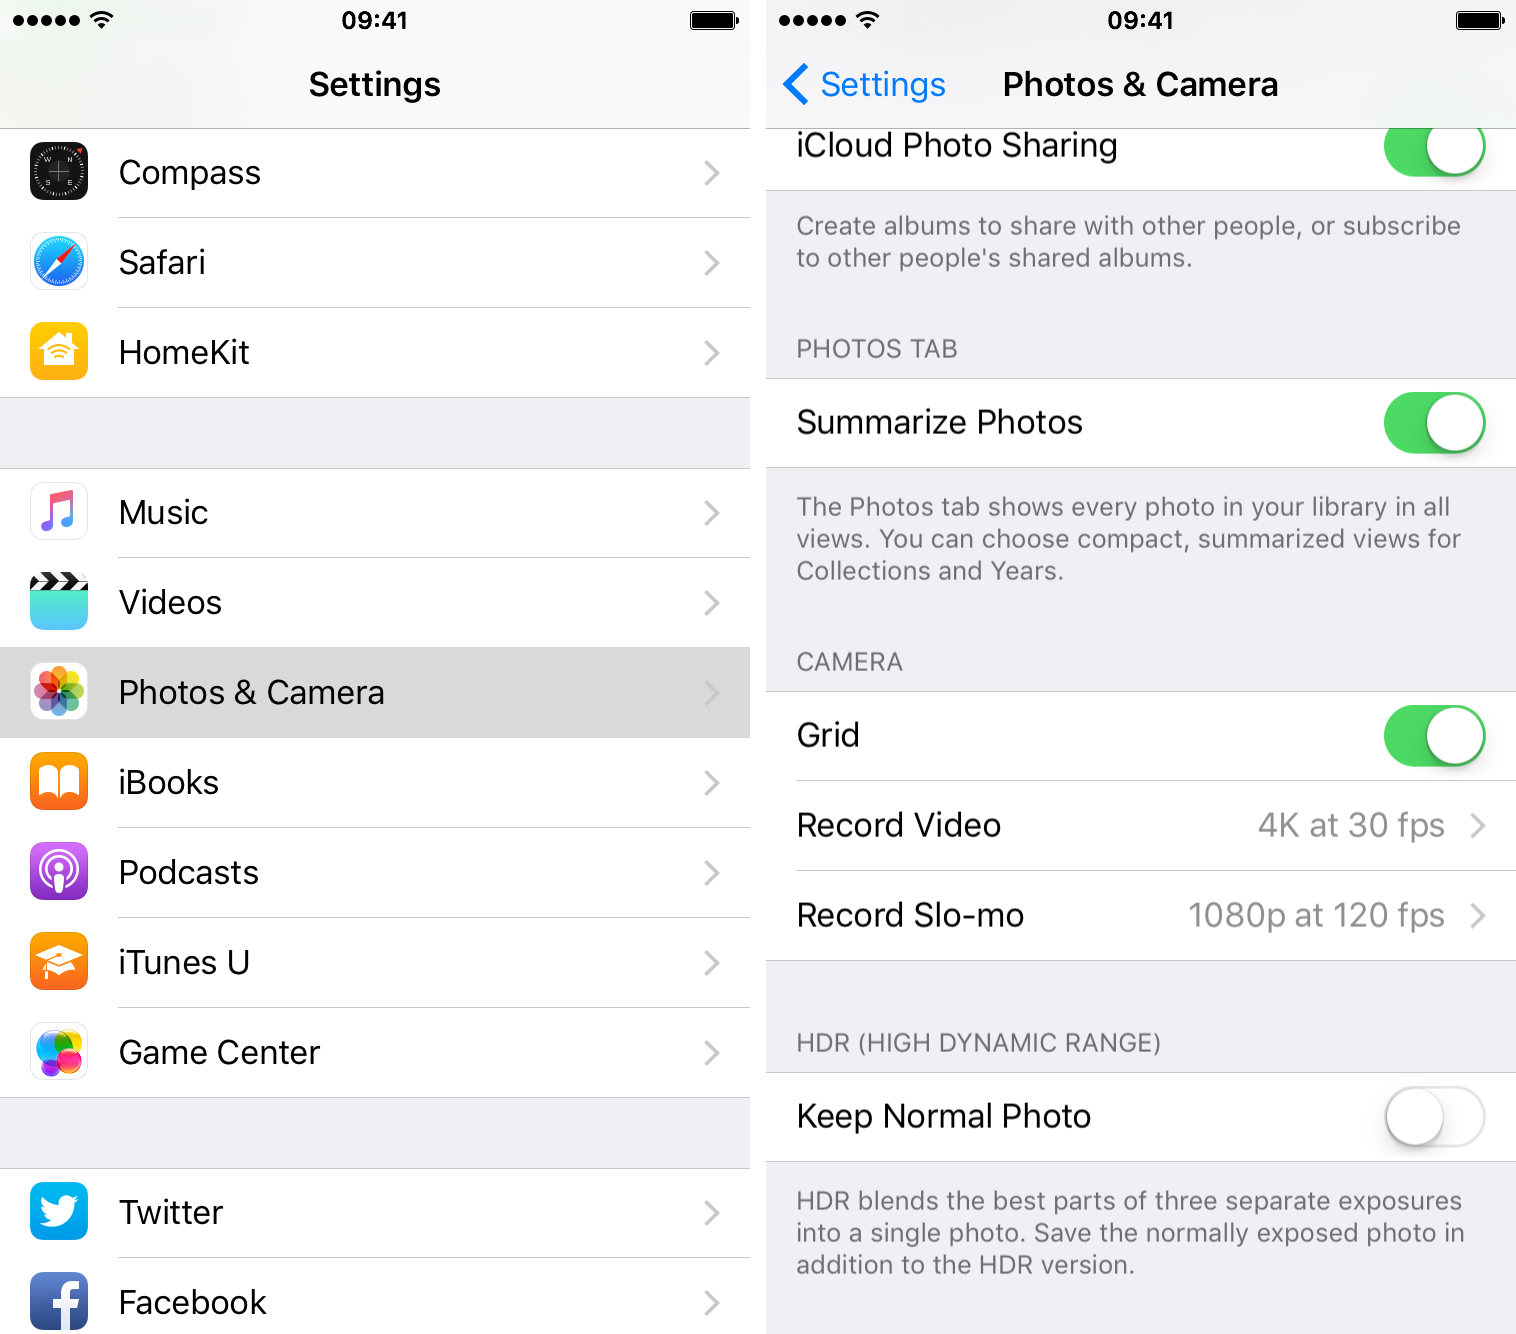 Turn off HDR Photo Duplicates to Save iPhone Space - Image 2